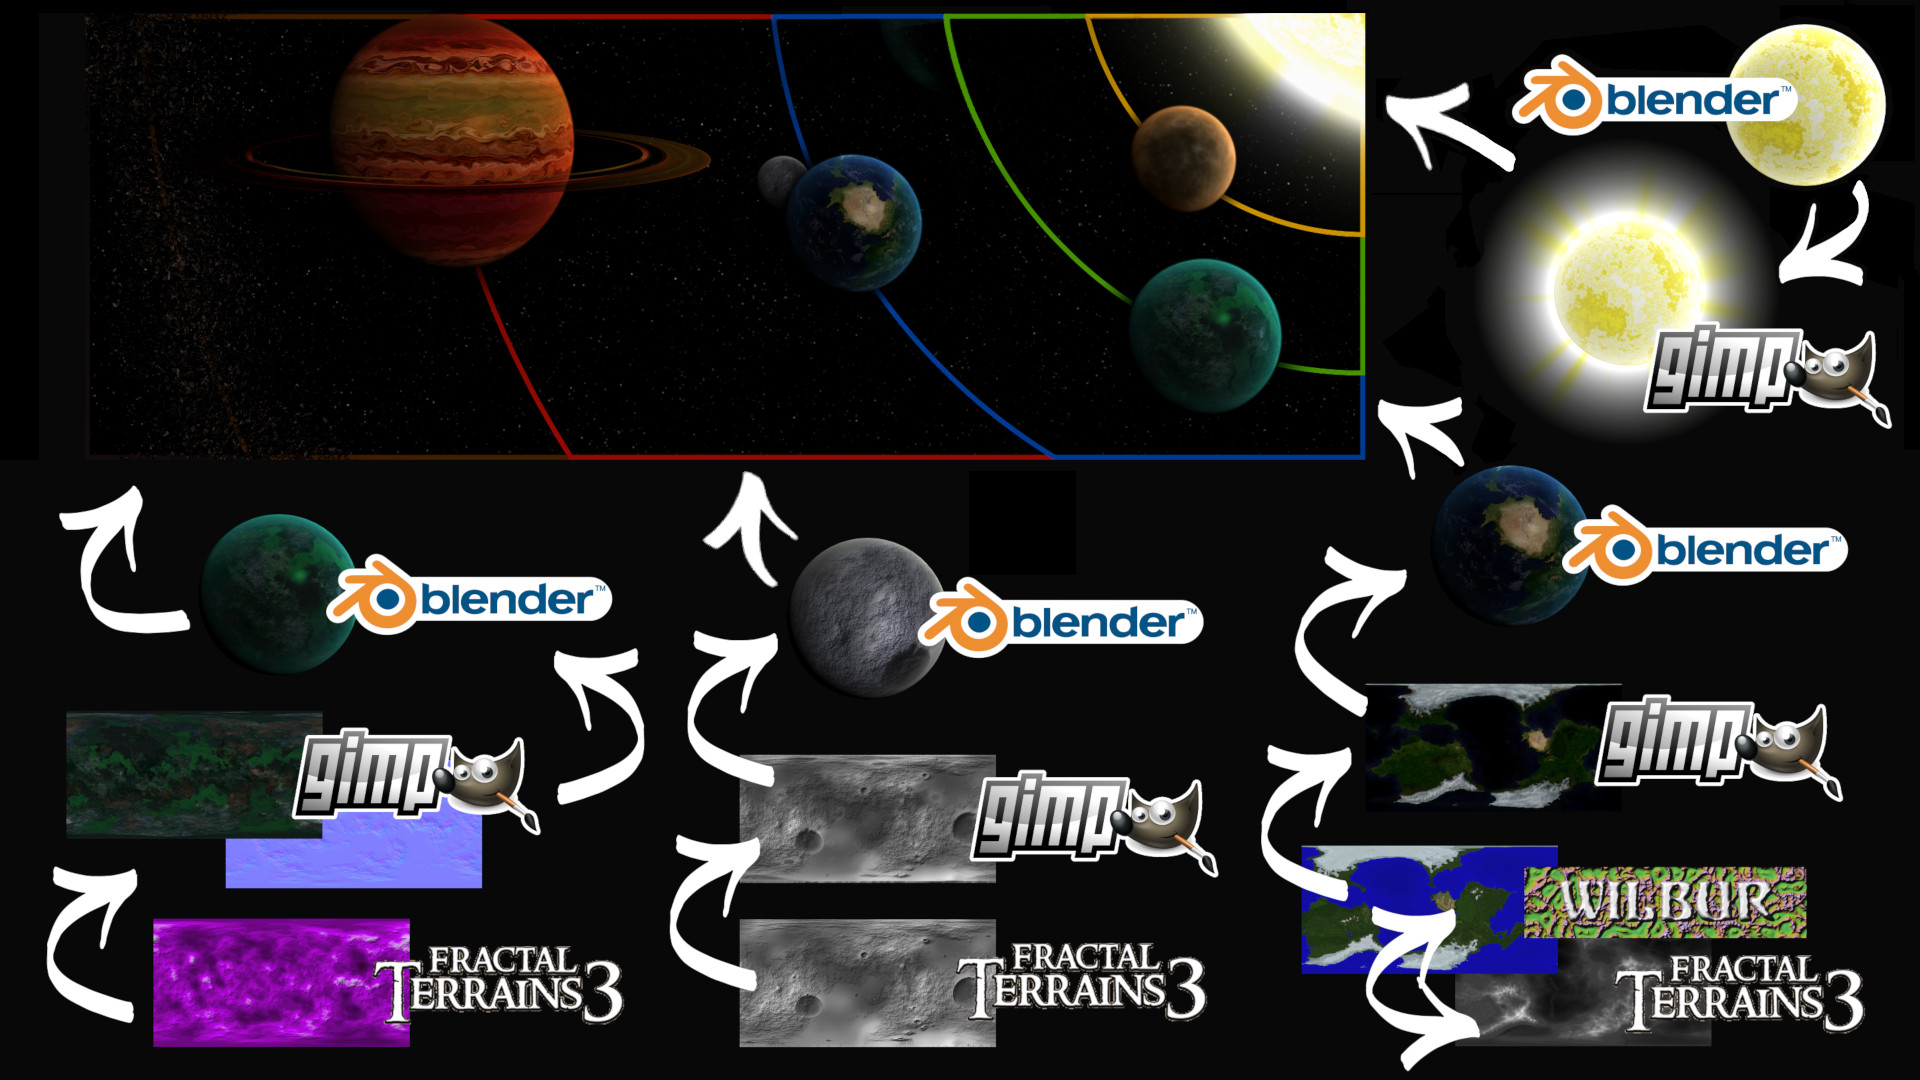 Solar system diagram showing creative workflow using open source software The GIMP, Blender, Wilbur and Fractal Terrains 3. Immersive & scientifically inspired style.